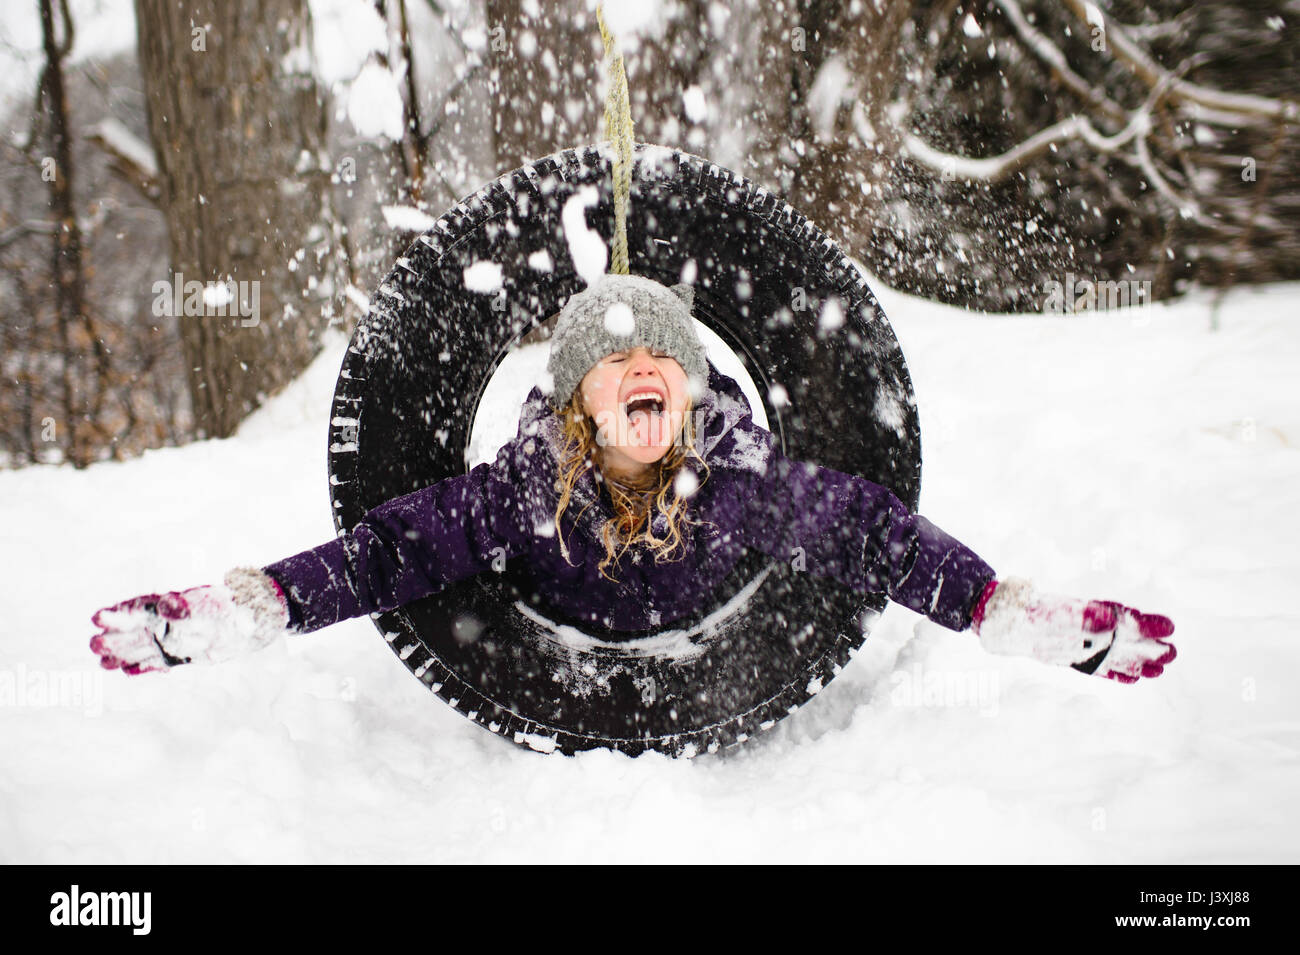 Girl playing in snow on tire swing - Stock Image